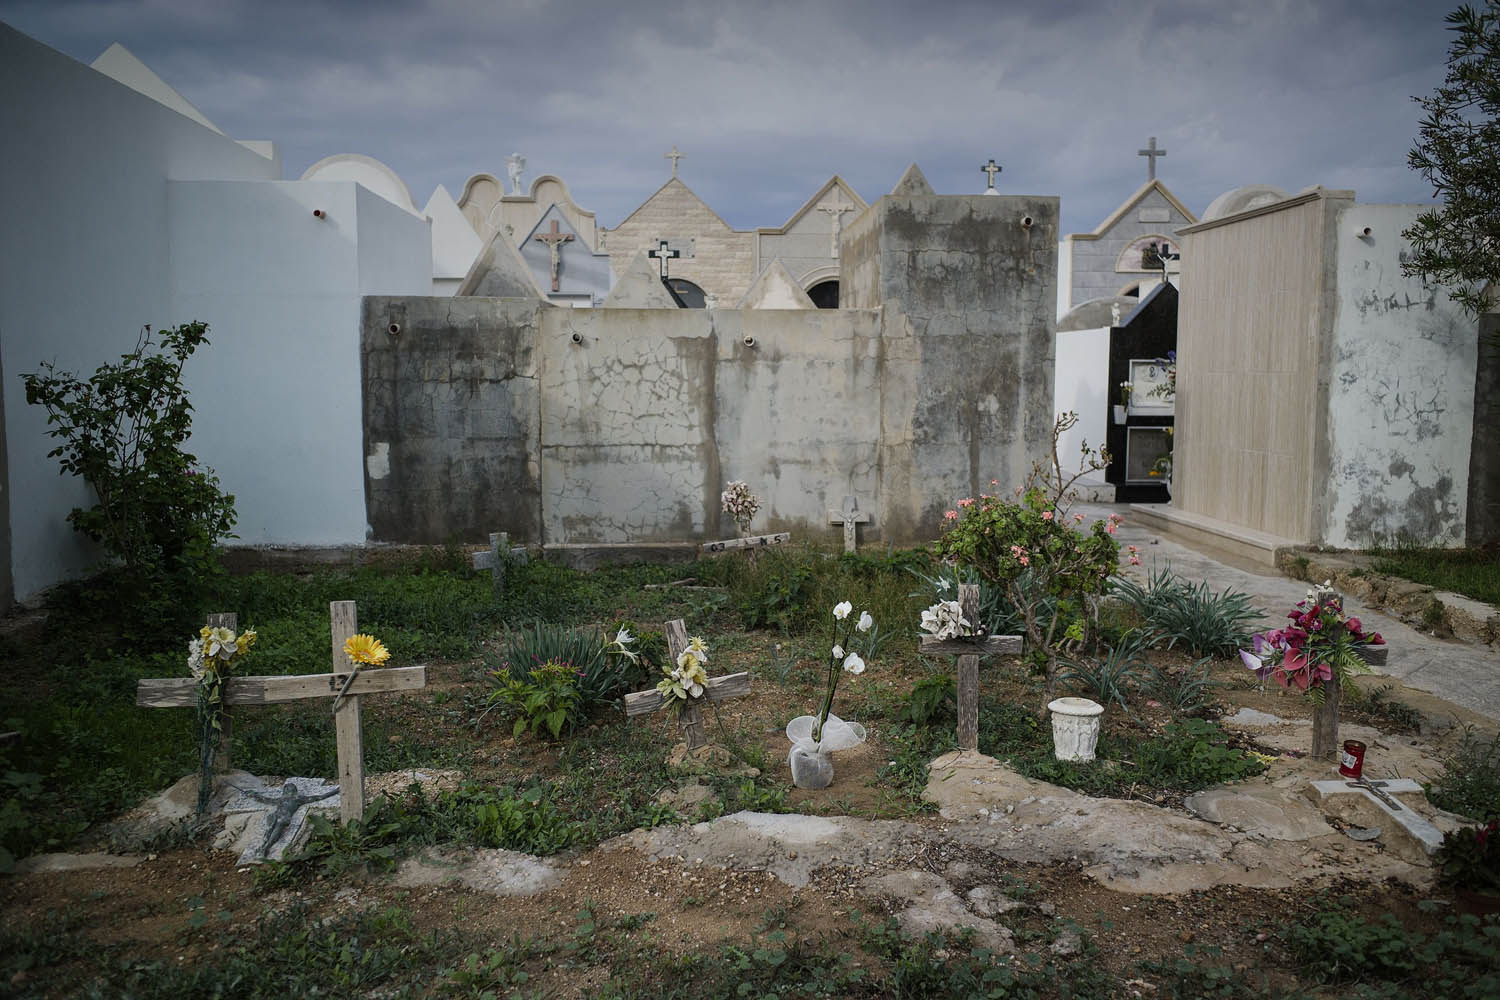 Oct. 7, 2013. Unidentified tombs of immigrants inside the cemetery of the Italian island of Lampedusa.